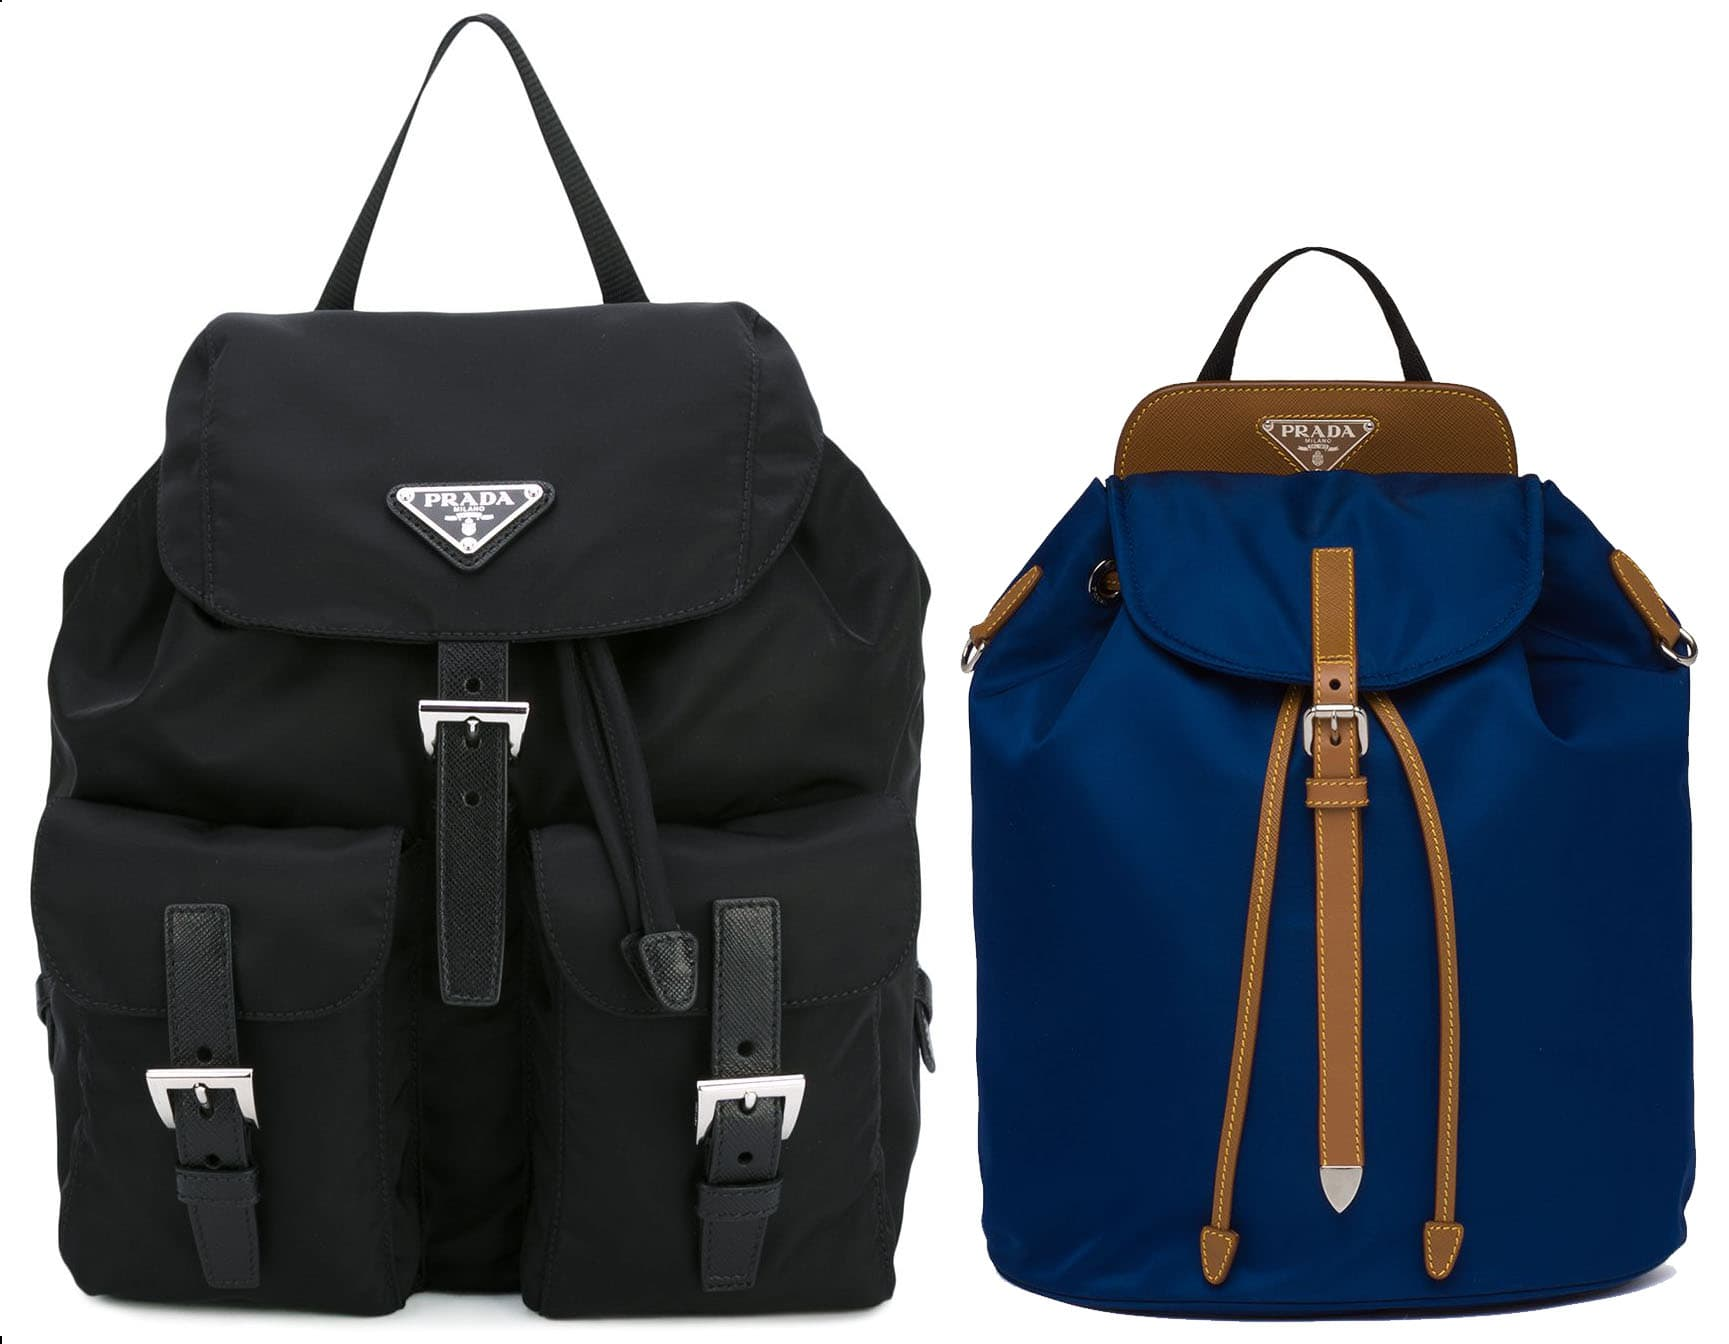 Prada's nylon backpacks are not only chic but also durable and water-resistant